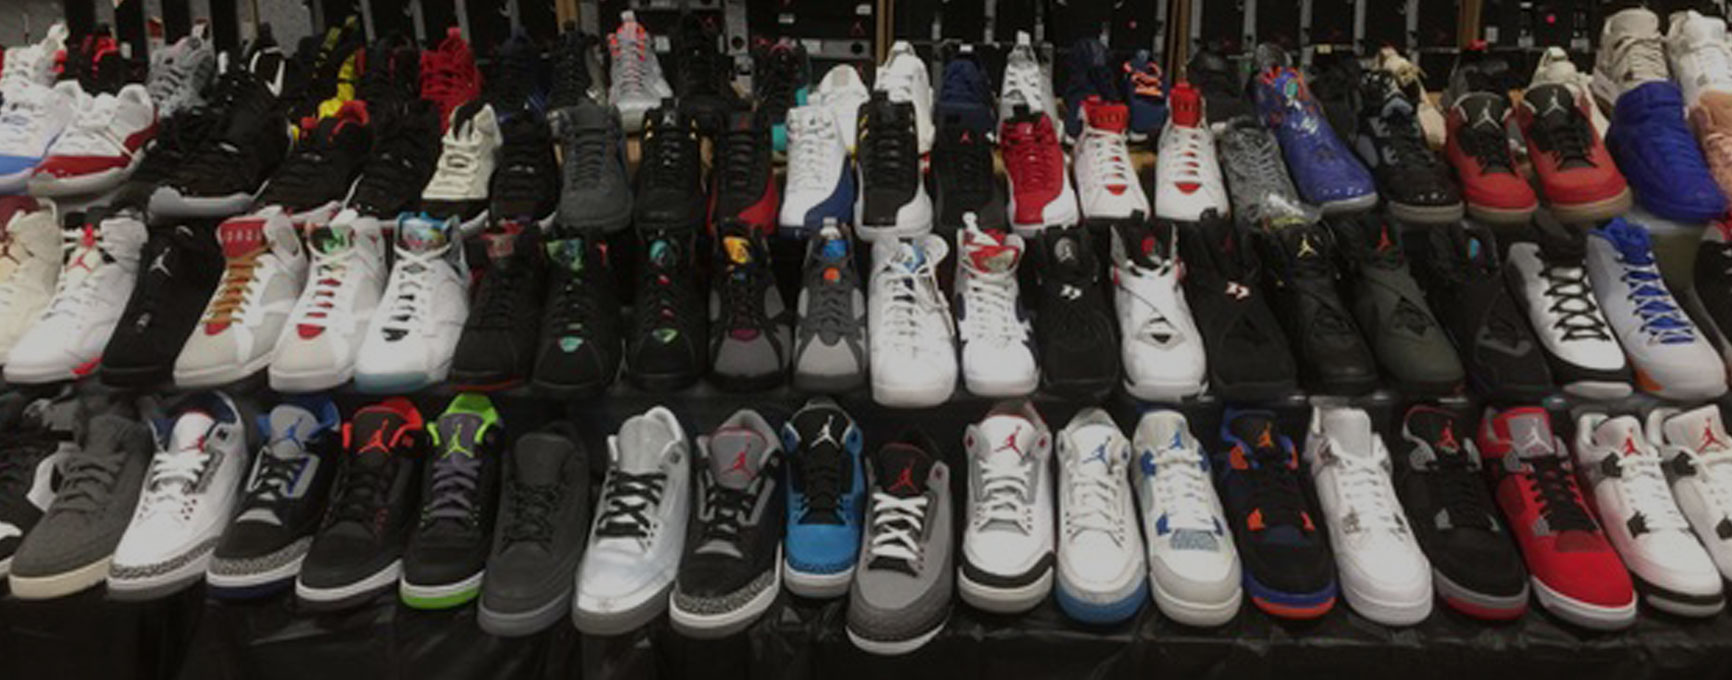 Sixty plus Air Jordan retros containing over six different Jordan silhouettes